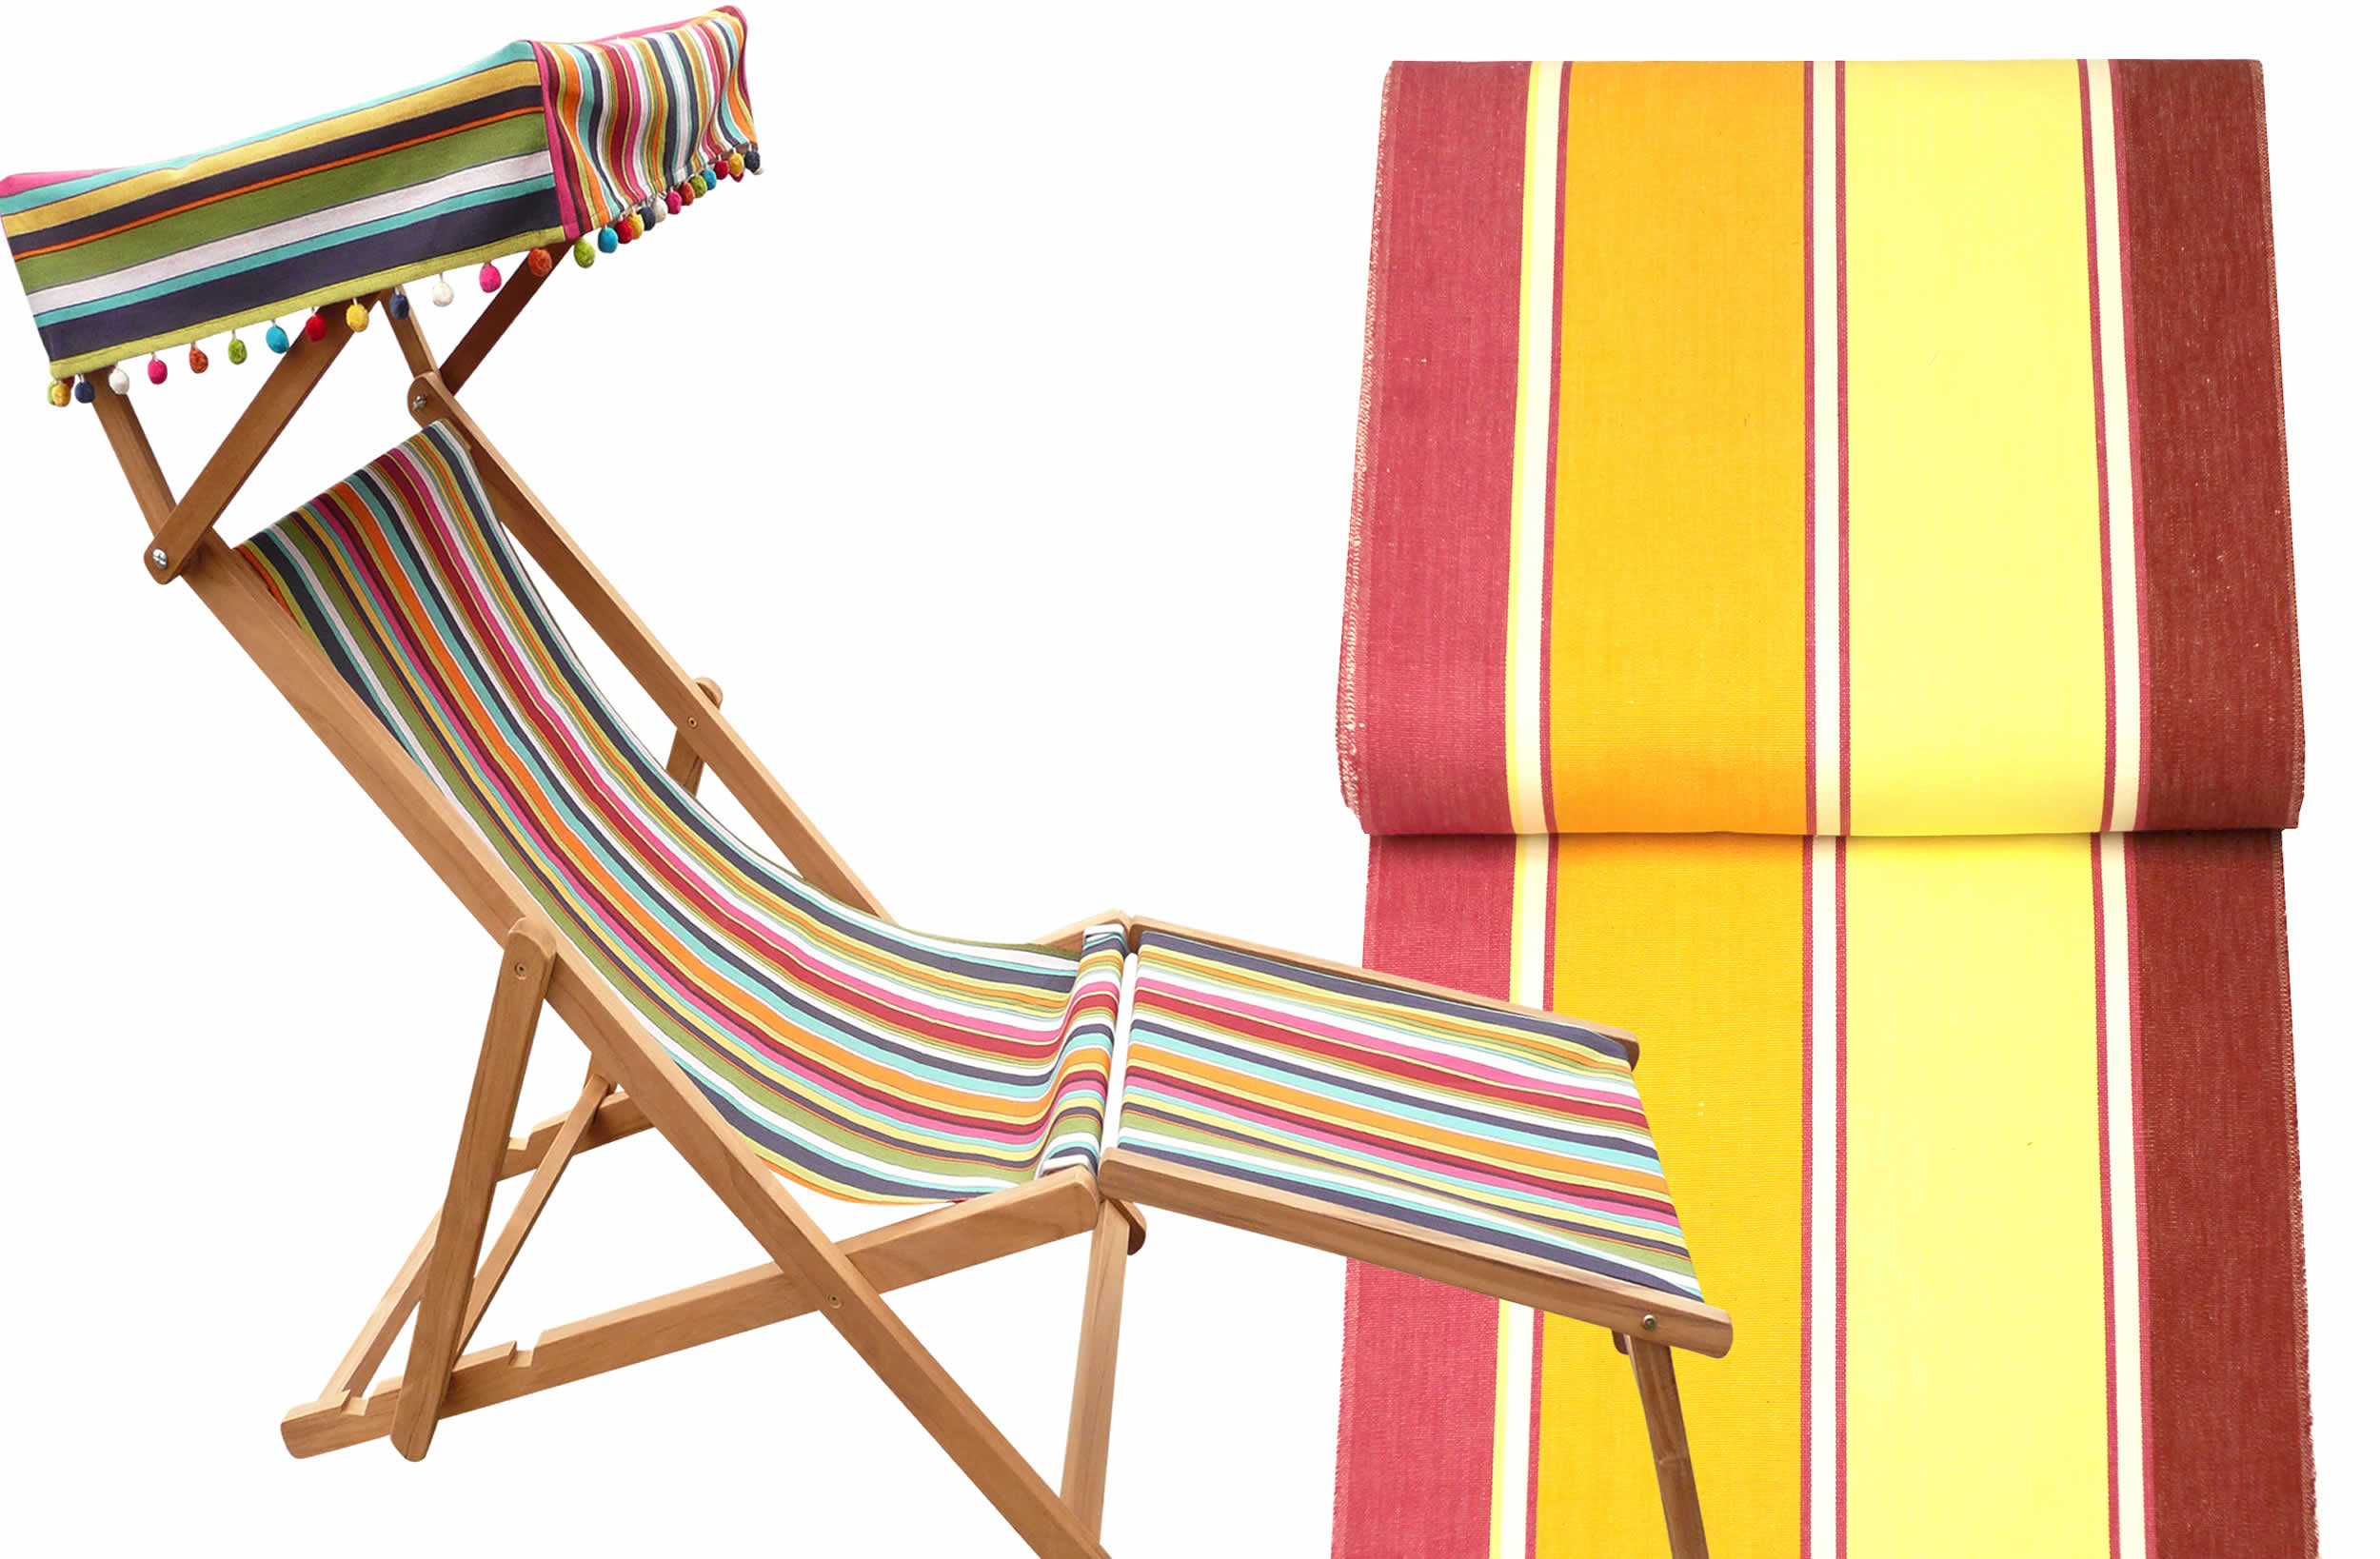 Edwardian Deckchairs with Canopy and Footstool - Acrobatics